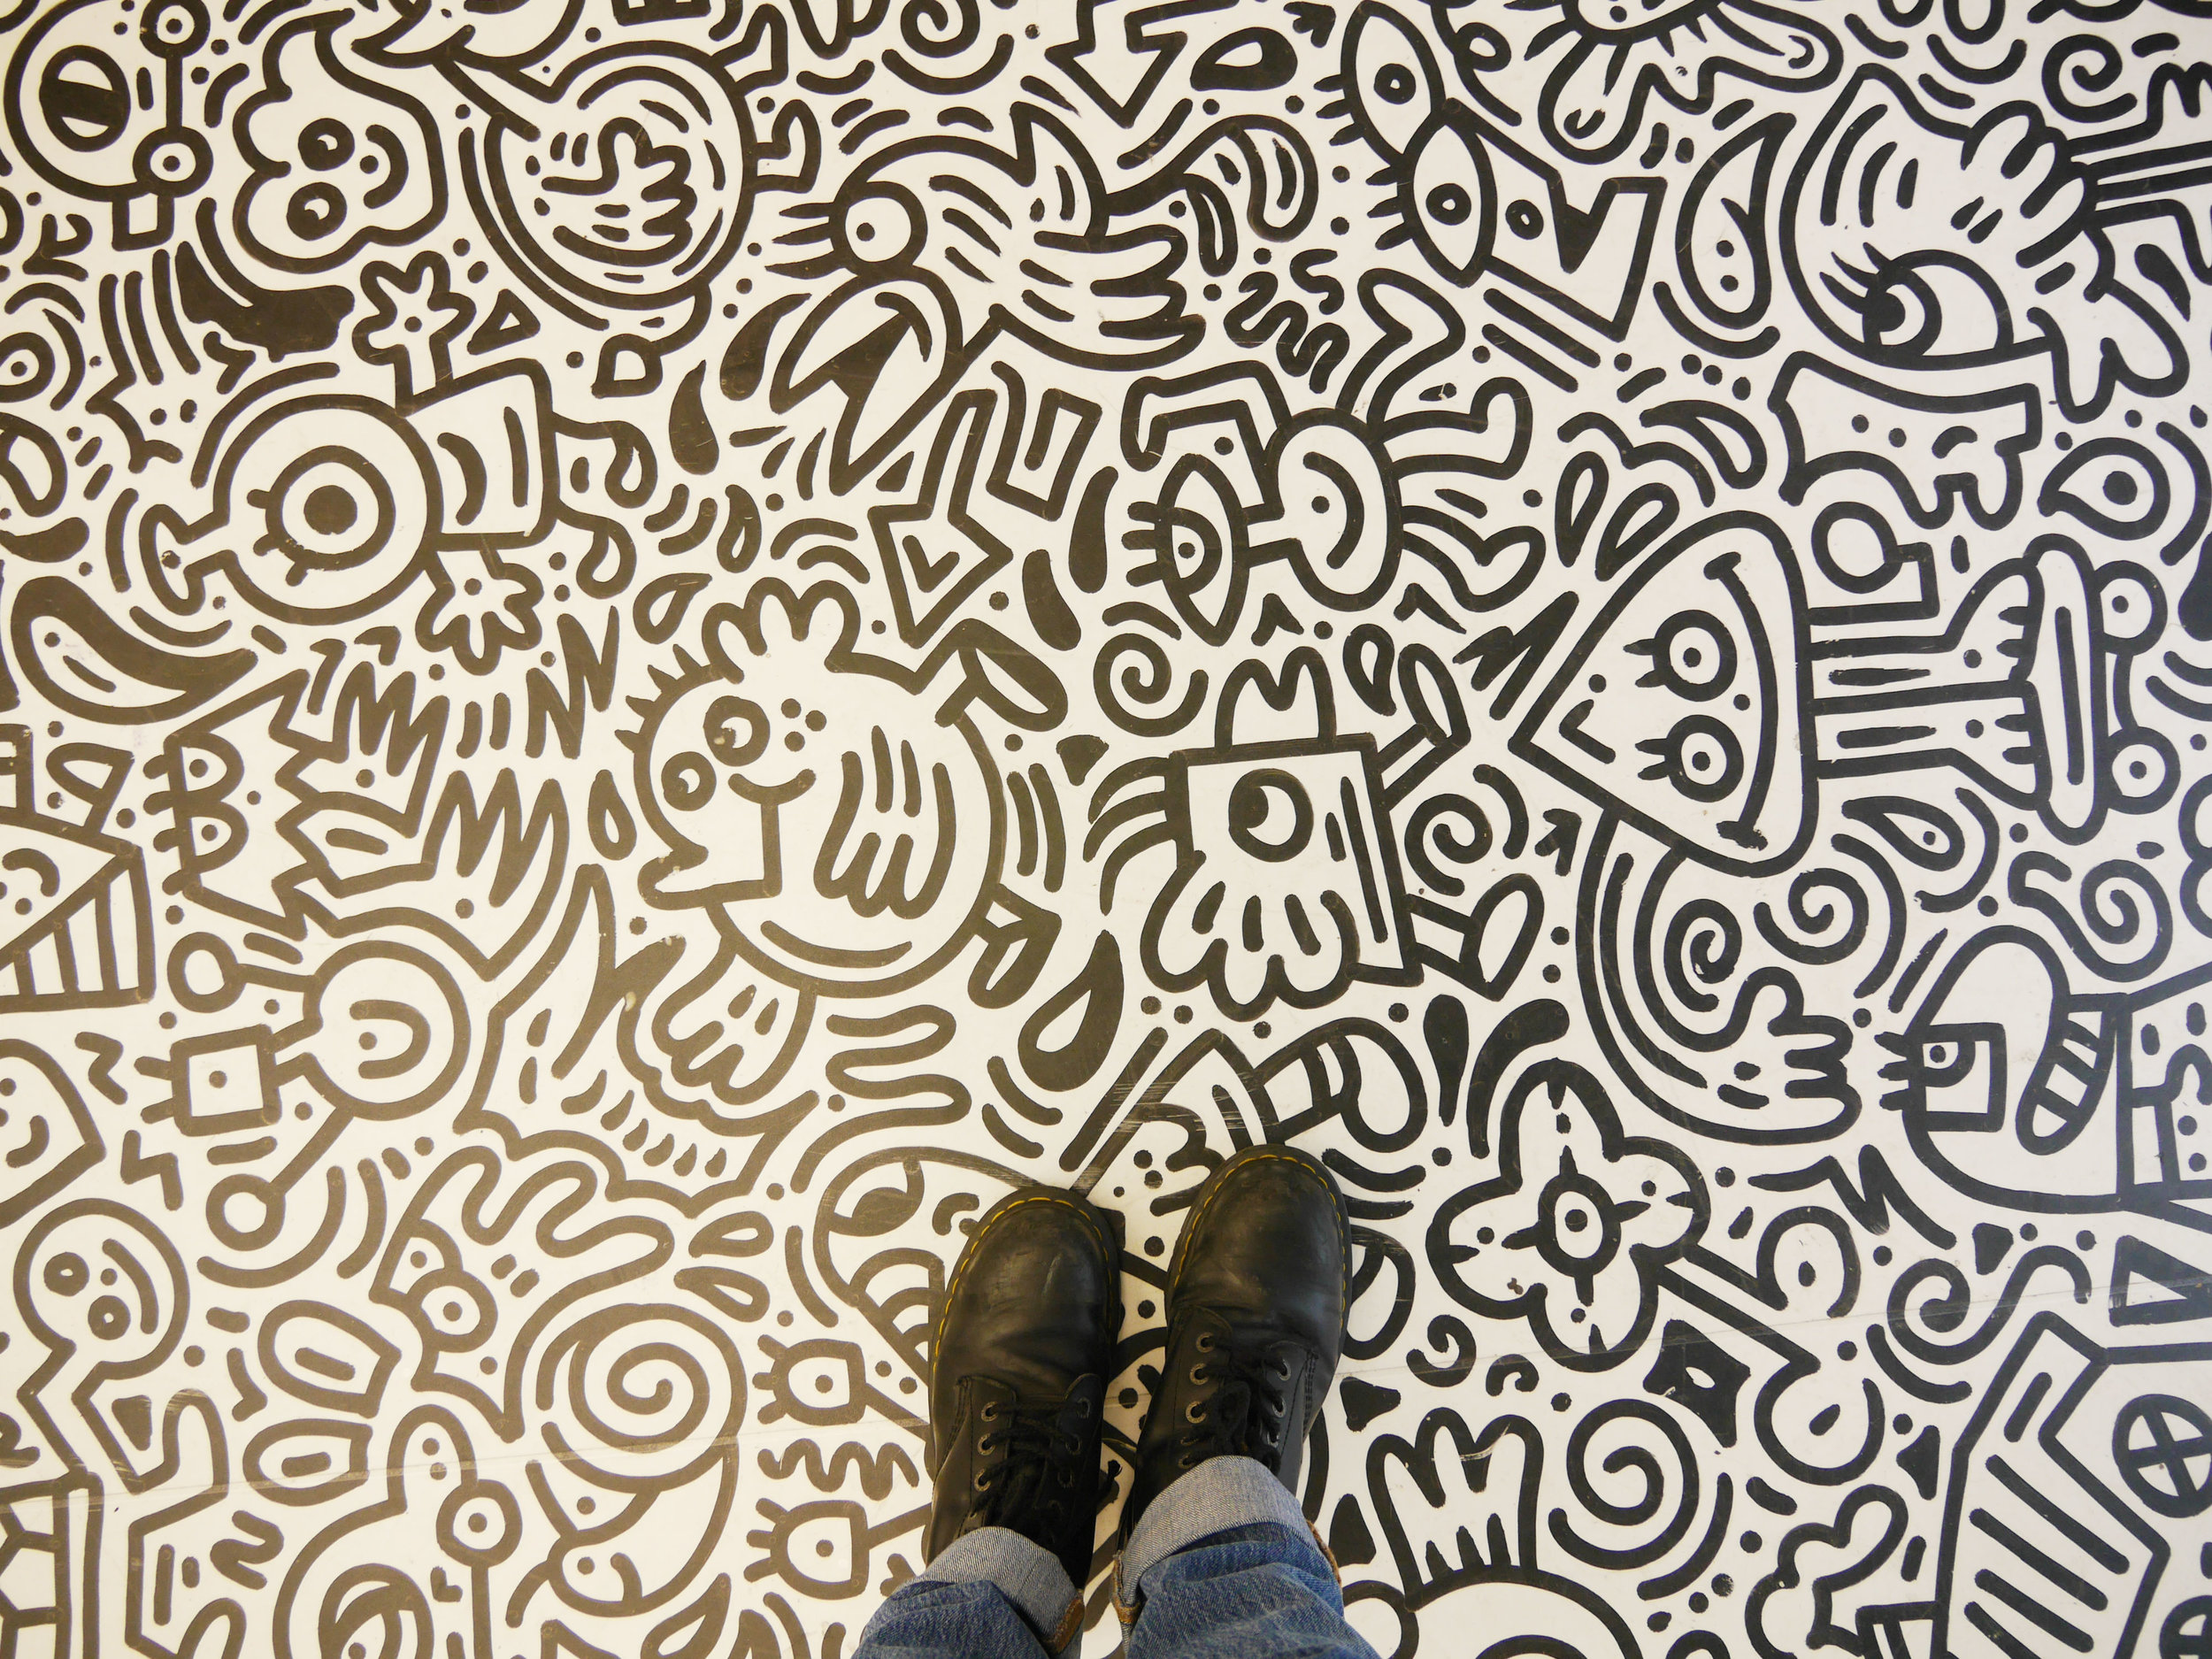 Doodle room at the Sense of Space exhibition in London.